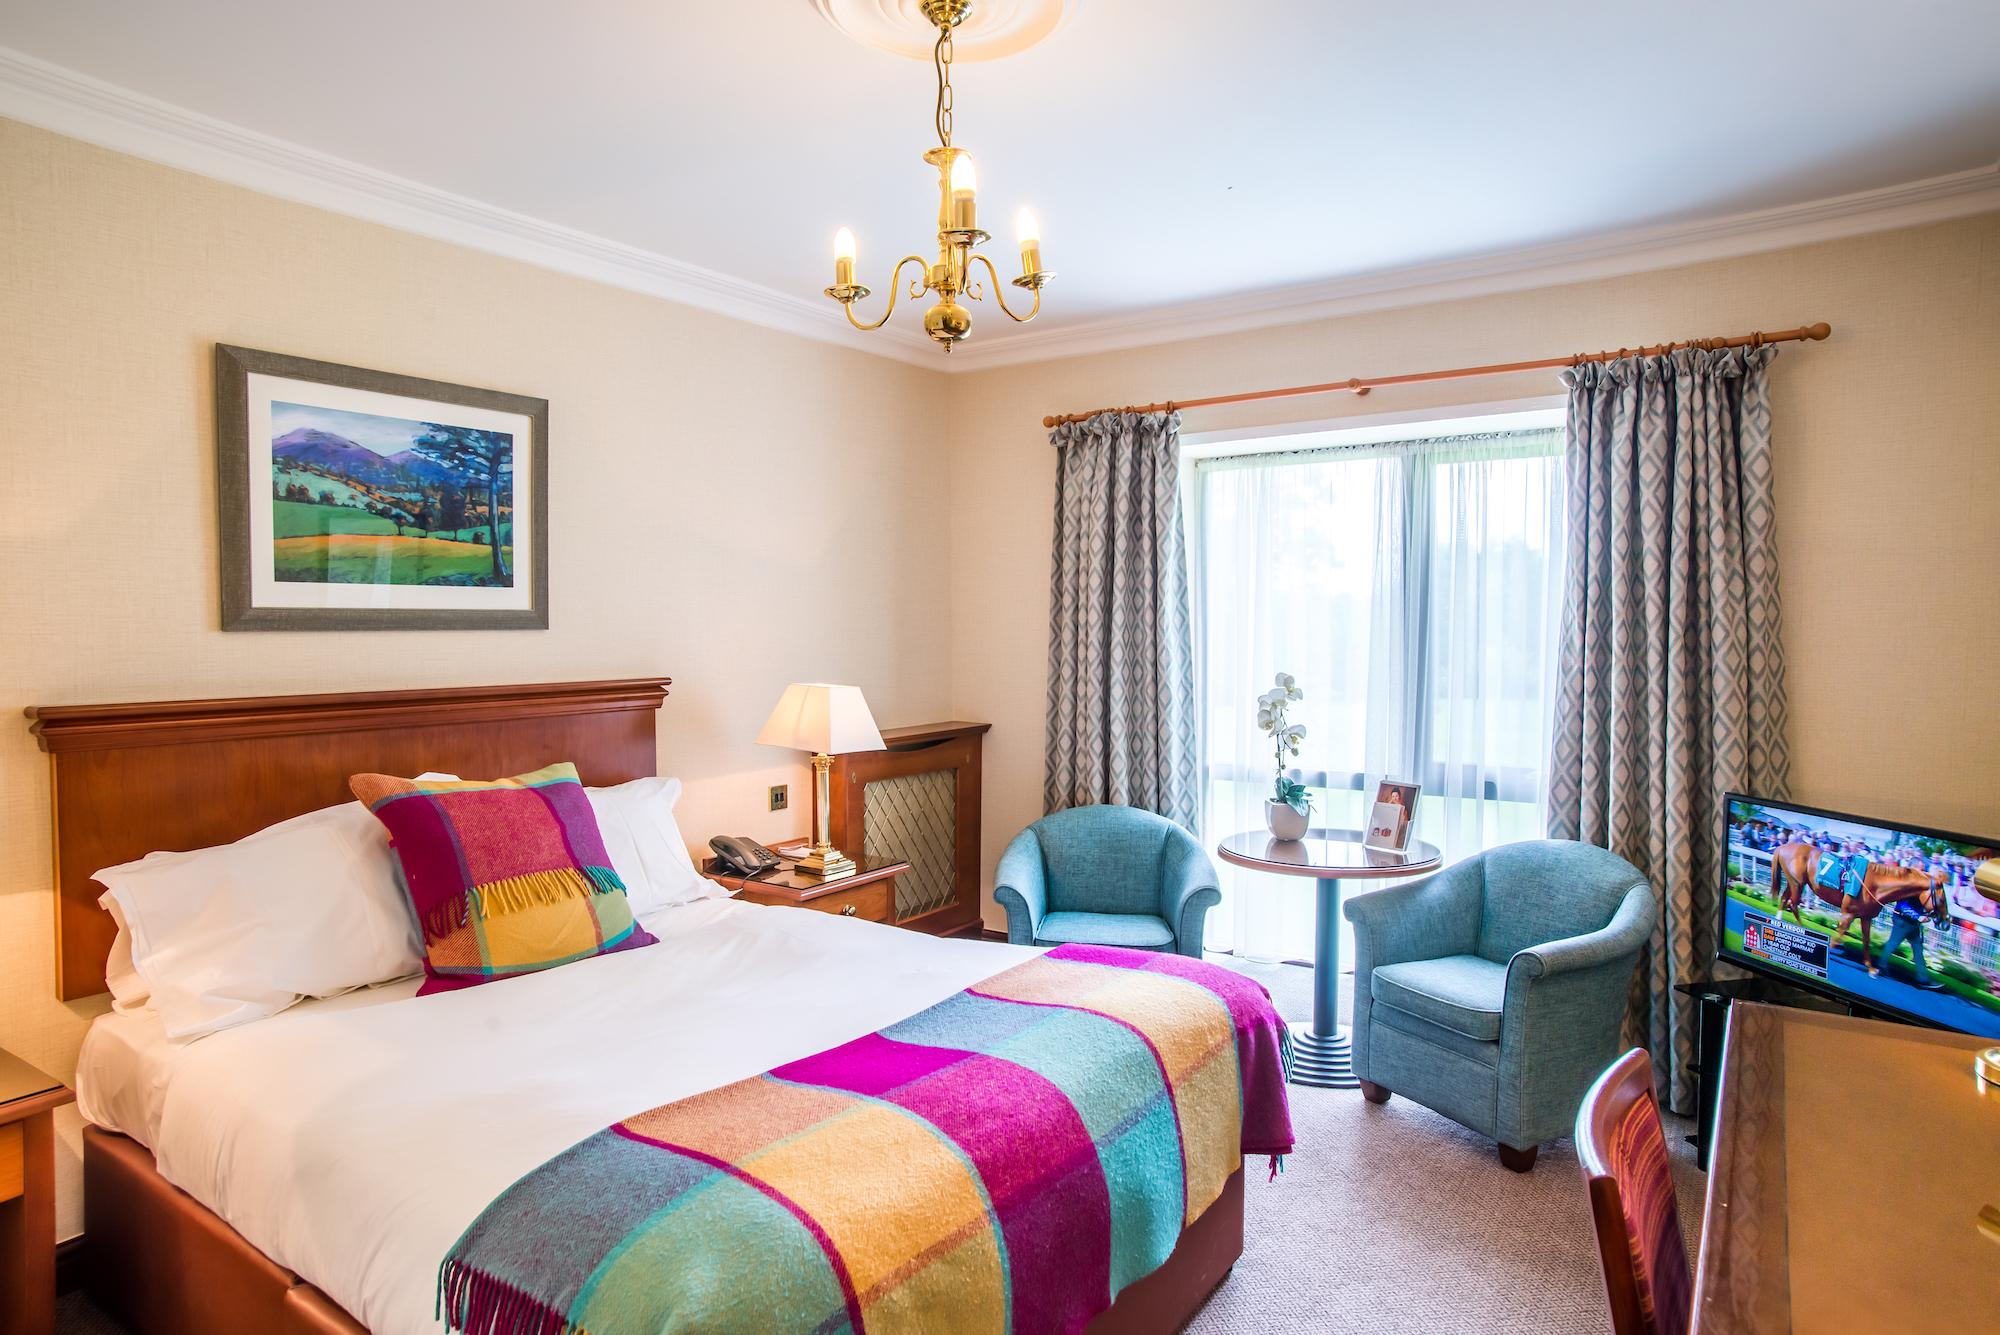 Hotels in Monmouthshire holidays at Cool Places